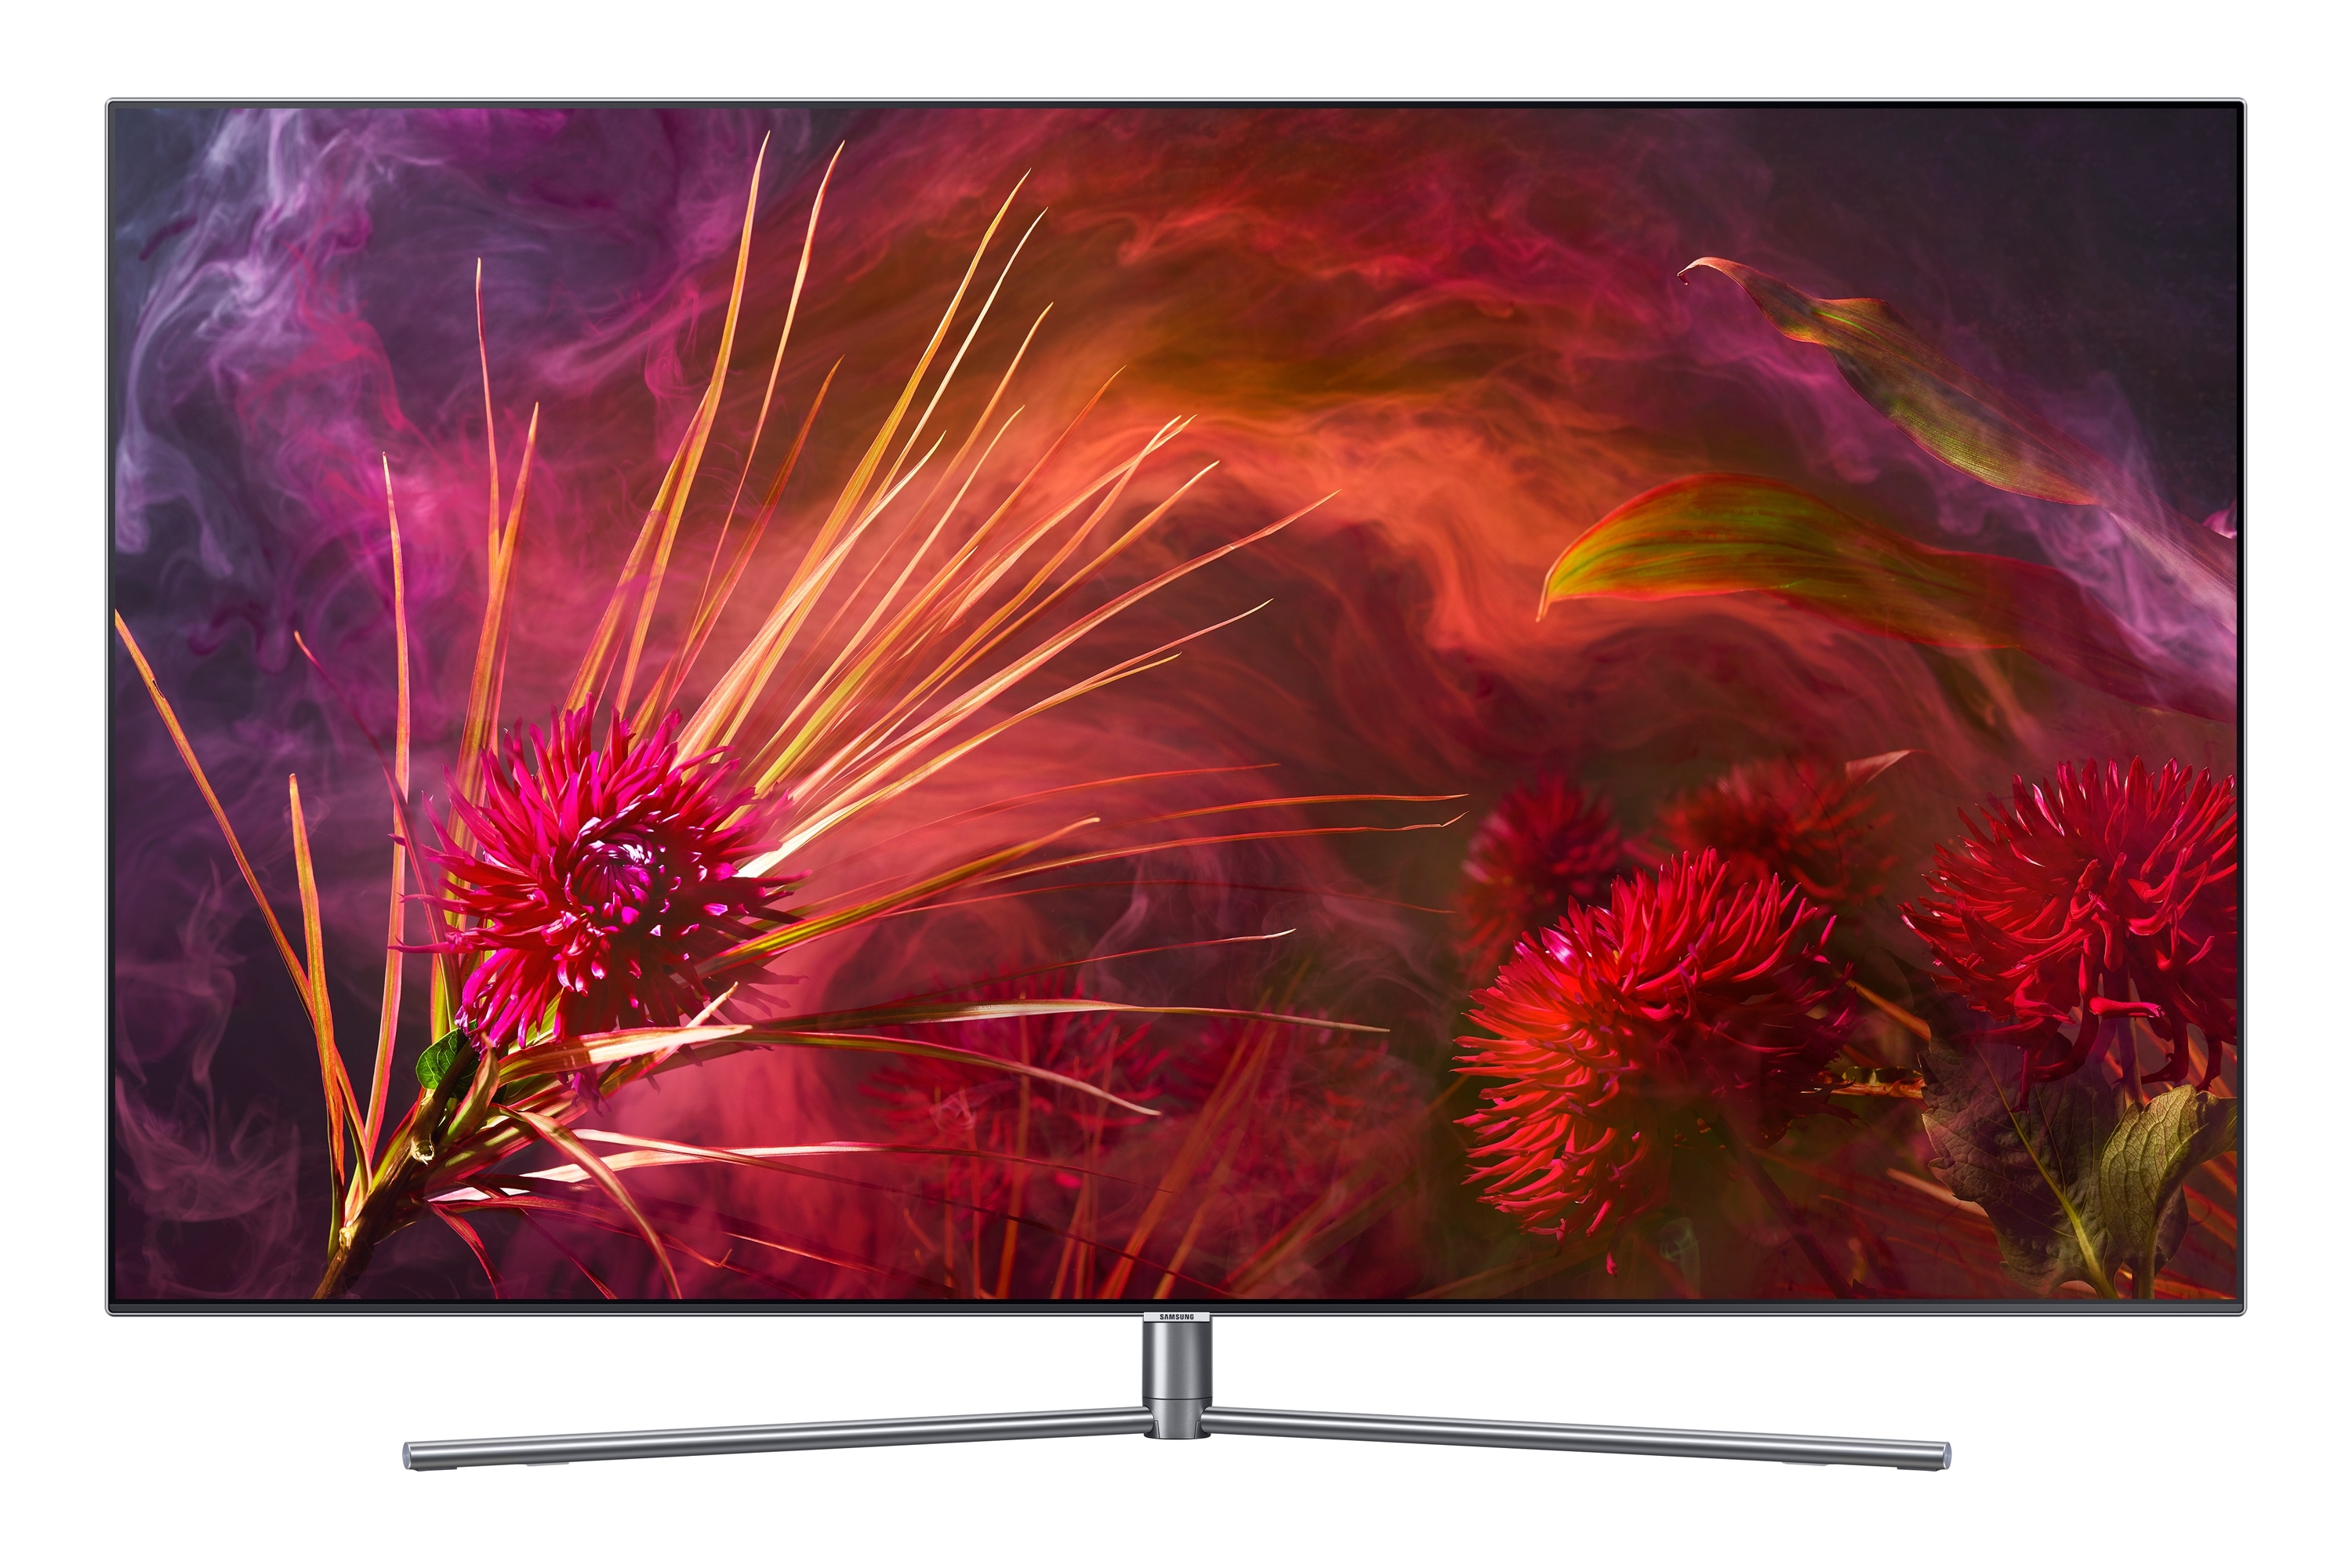 TV QLED 55Q8F 2018 , Ecran Quantum Dot, Smart TV